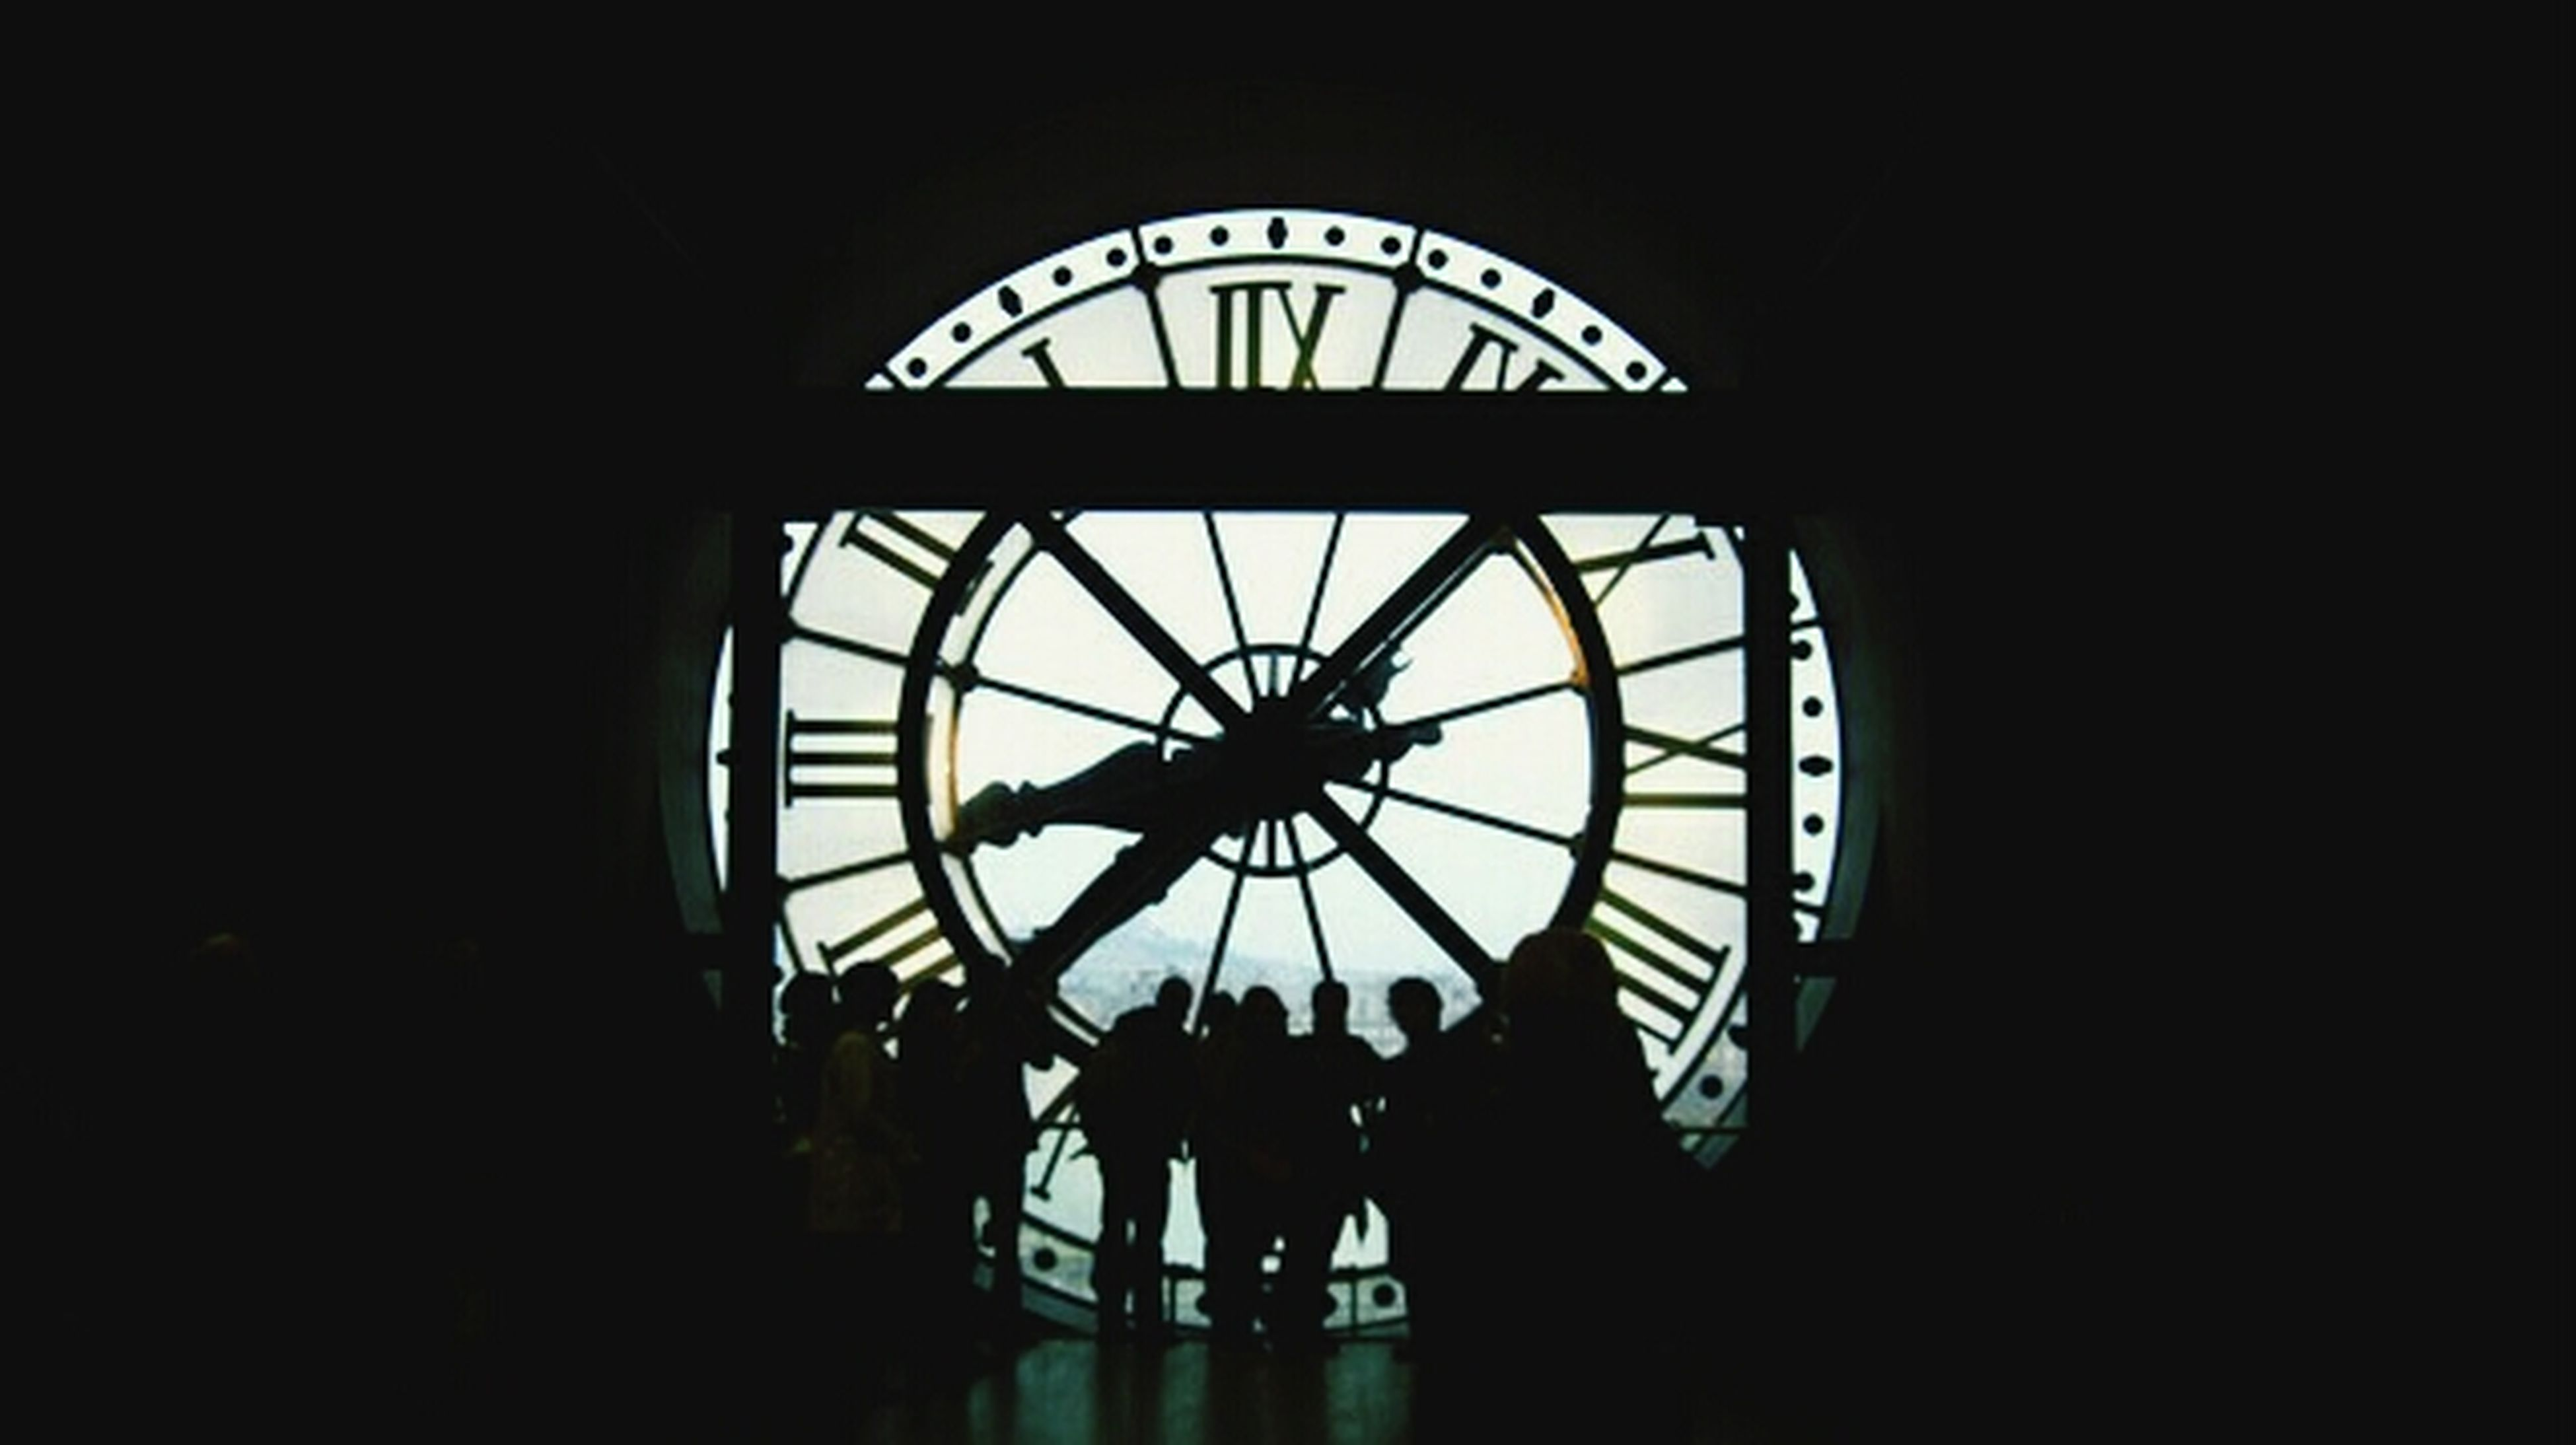 indoors, silhouette, built structure, low angle view, architecture, circle, clock, window, geometric shape, time, glass - material, sky, skylight, copy space, dark, clear sky, day, directly below, ceiling, shape